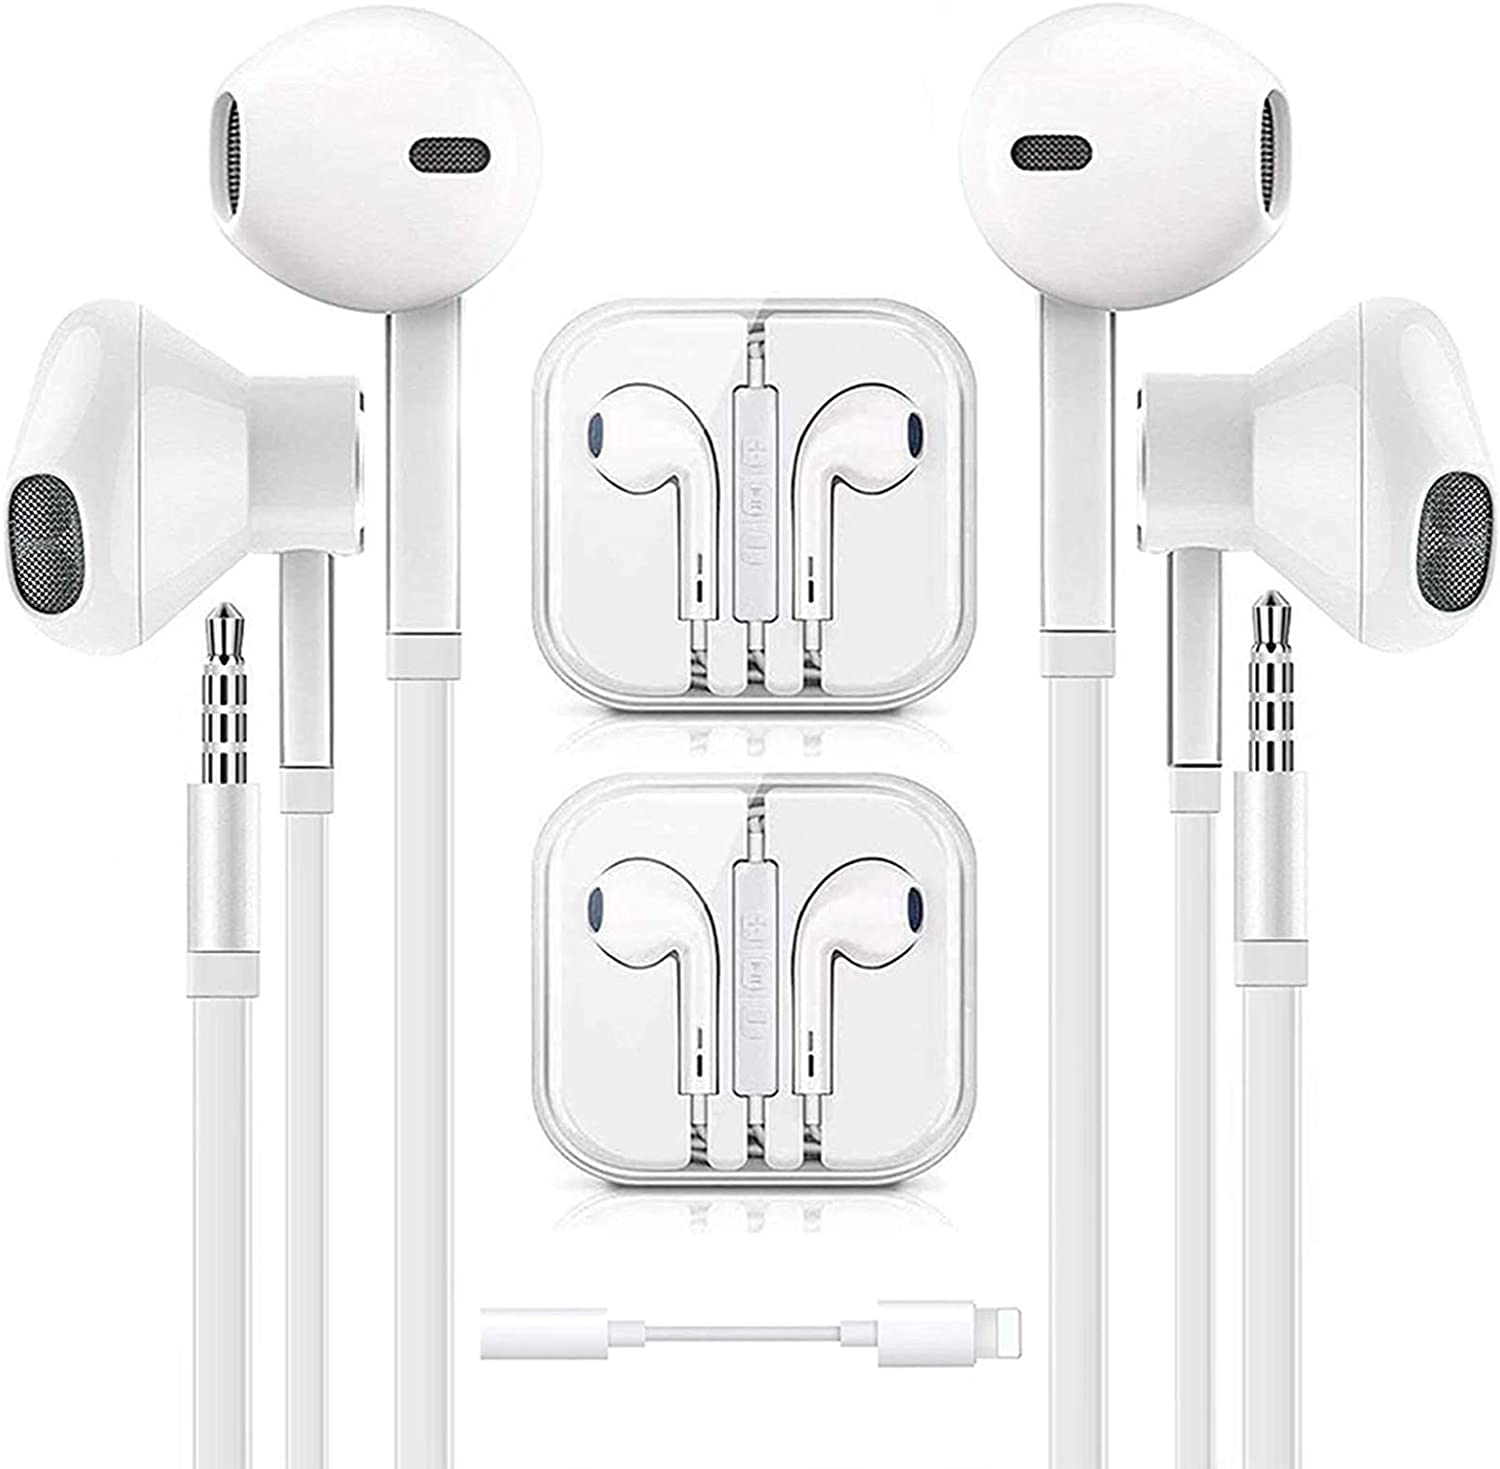 Earbuds, Earphone, Wired Headphones- 3.5mm in-Ear Wired Earbuds with Built-in Microphone & Volume Control Compatible with iPhone 6s plus/6/5s/c/iPad/S10,Android All 3.5 mm Audio Devices (2 Pack)